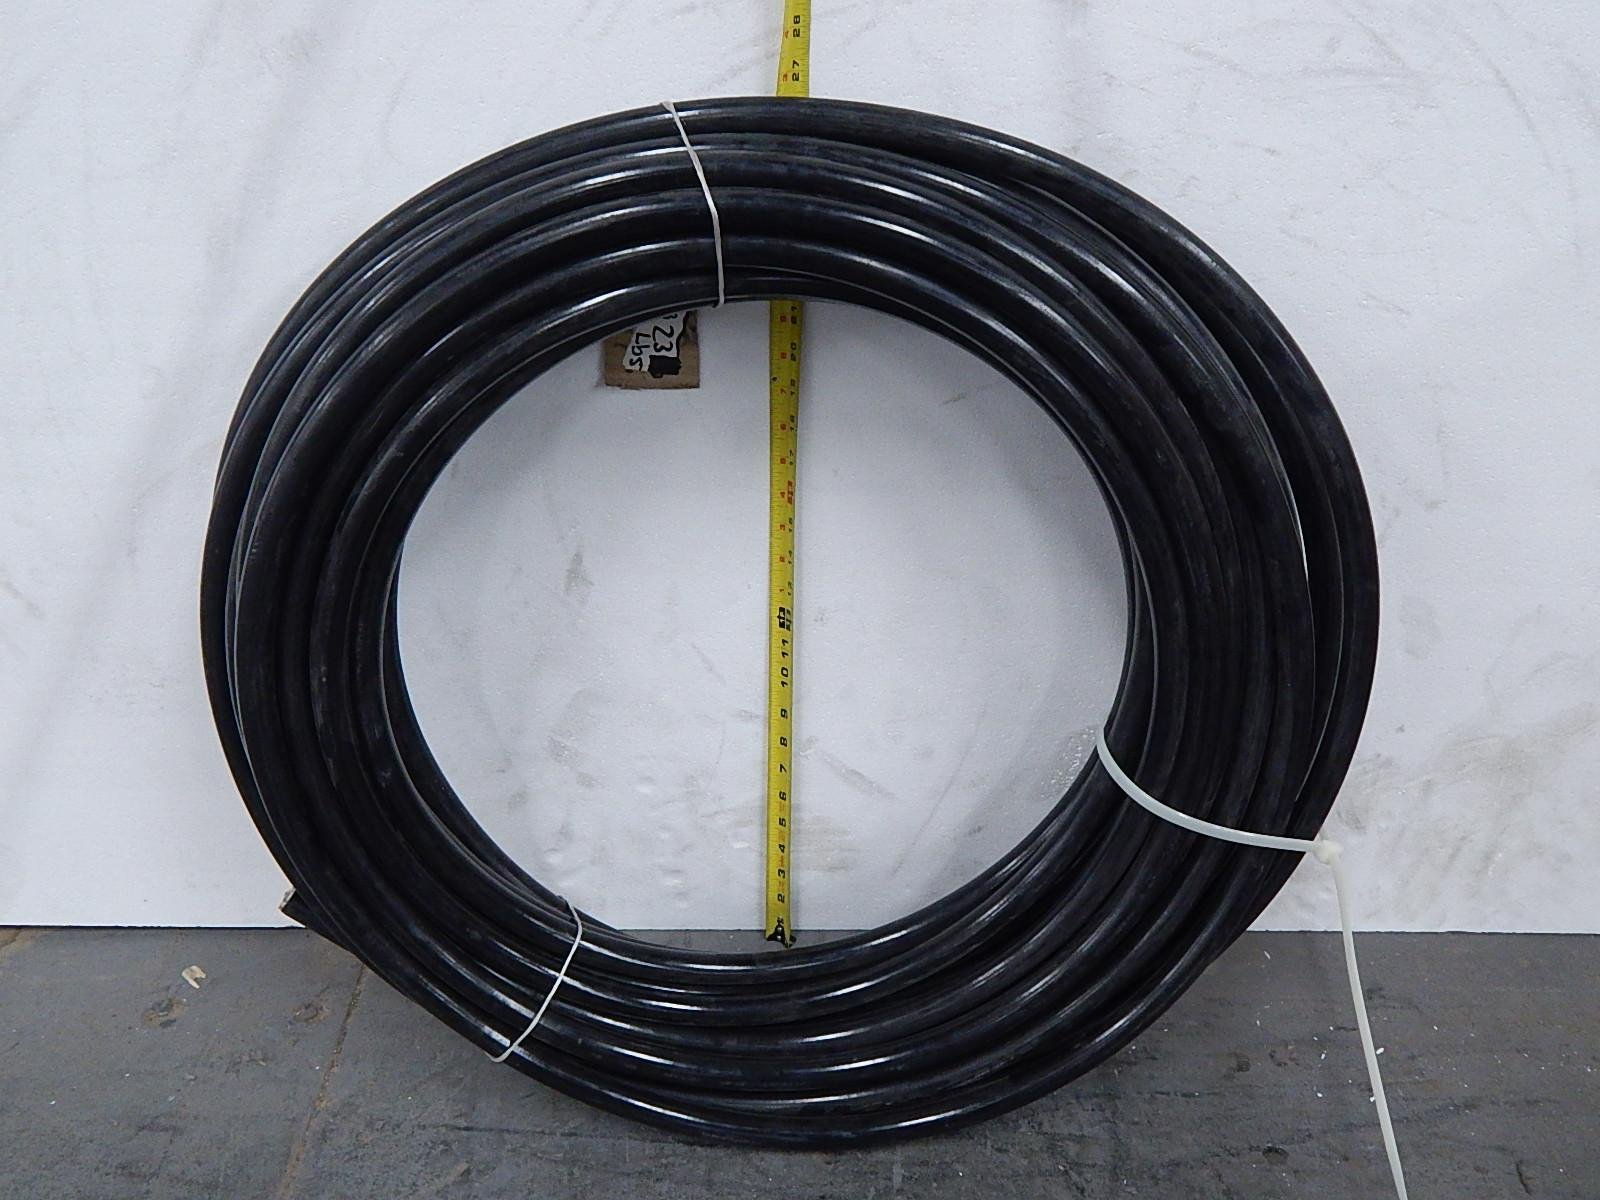 Gates 8TH8, SAE 100R8 1/2 In 3500 Psi Hydraulic Hose 90 Ft T103808